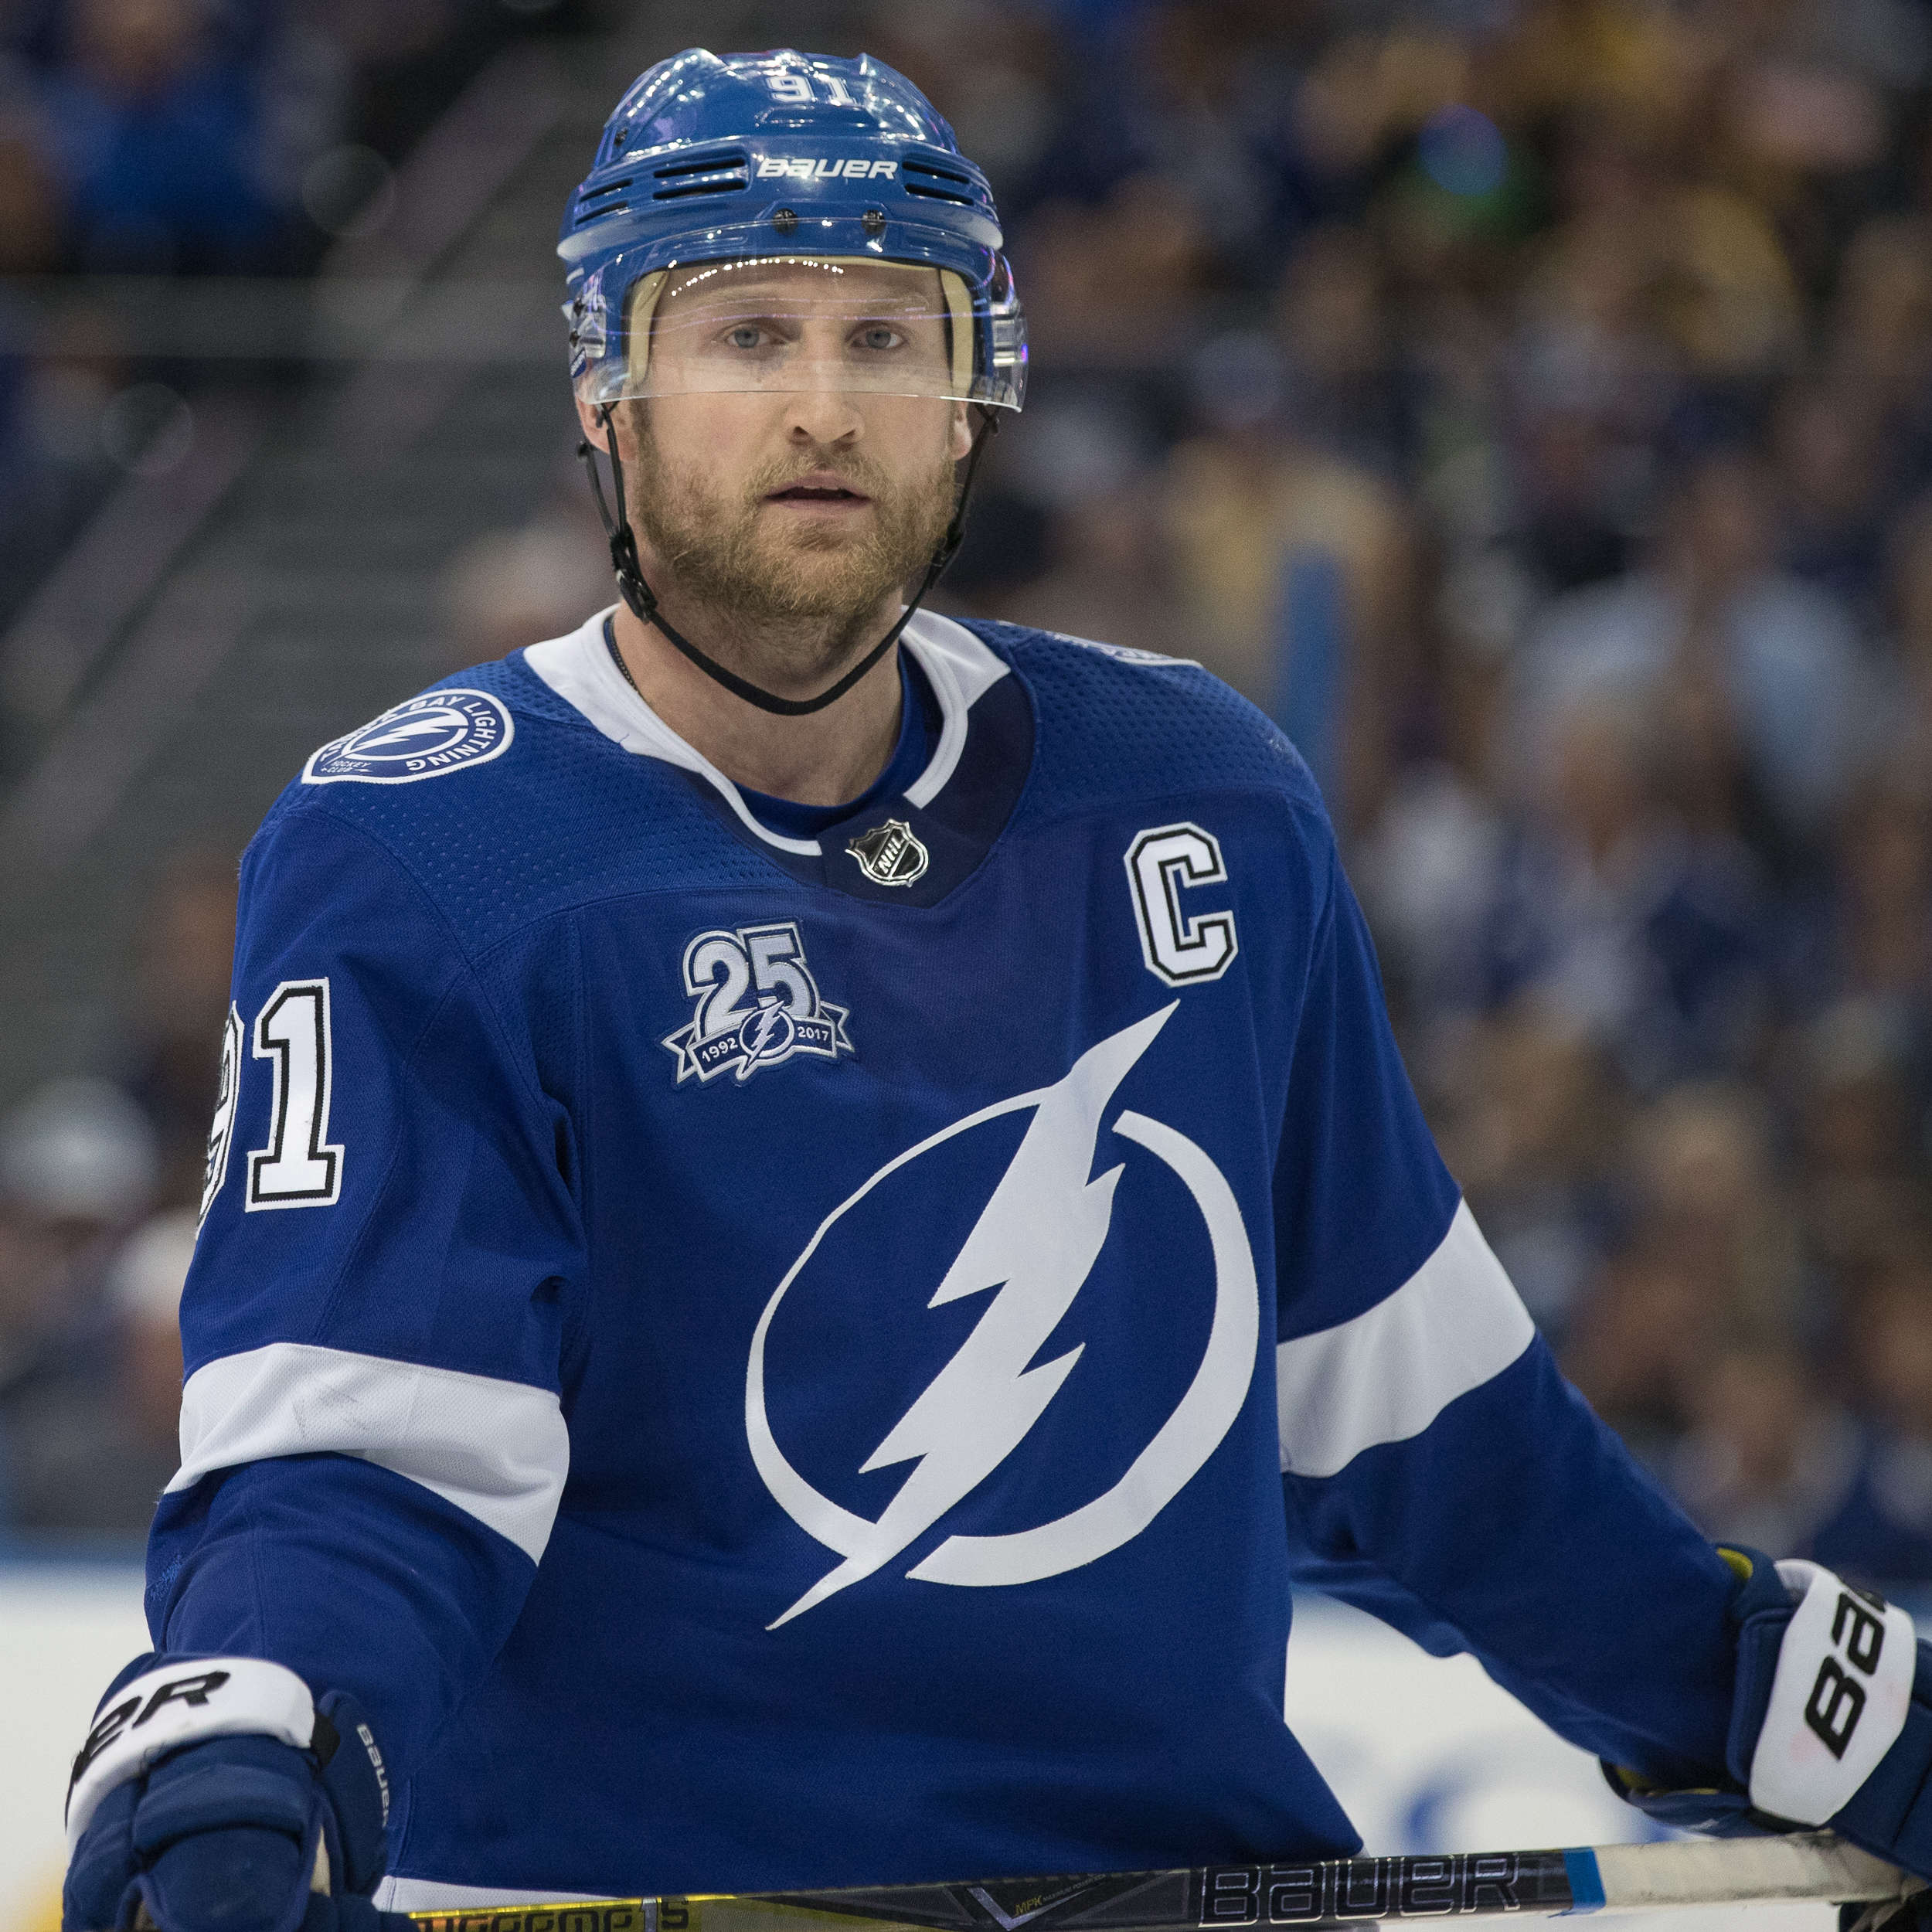 Steven Stamkos says the defensive commitment paid off./STEVEN MUNCIE